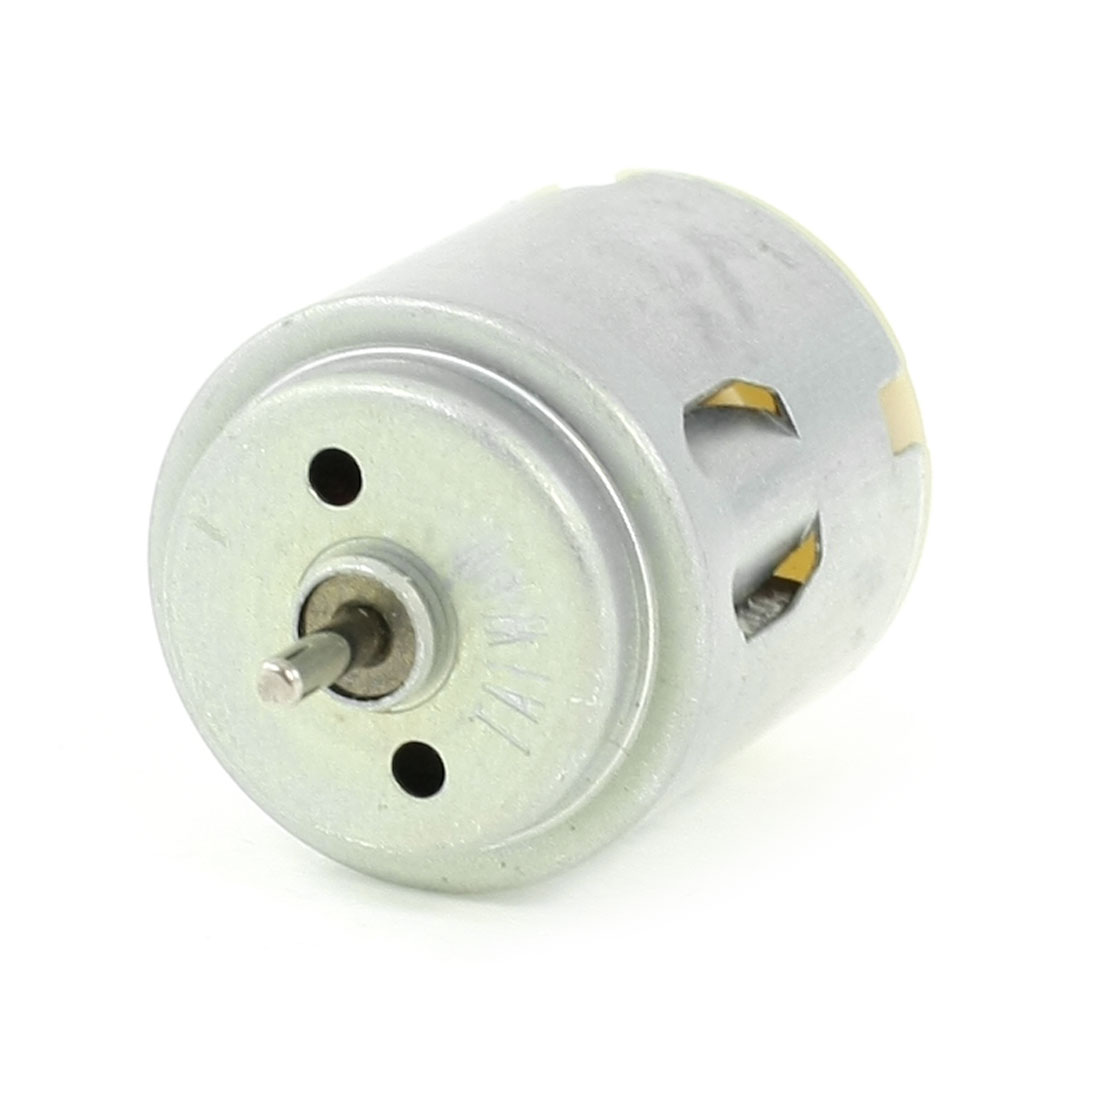 2700RPM-3V-0-01A-2-Pin-Connector-Cylindrical-Micro-DC-Motor